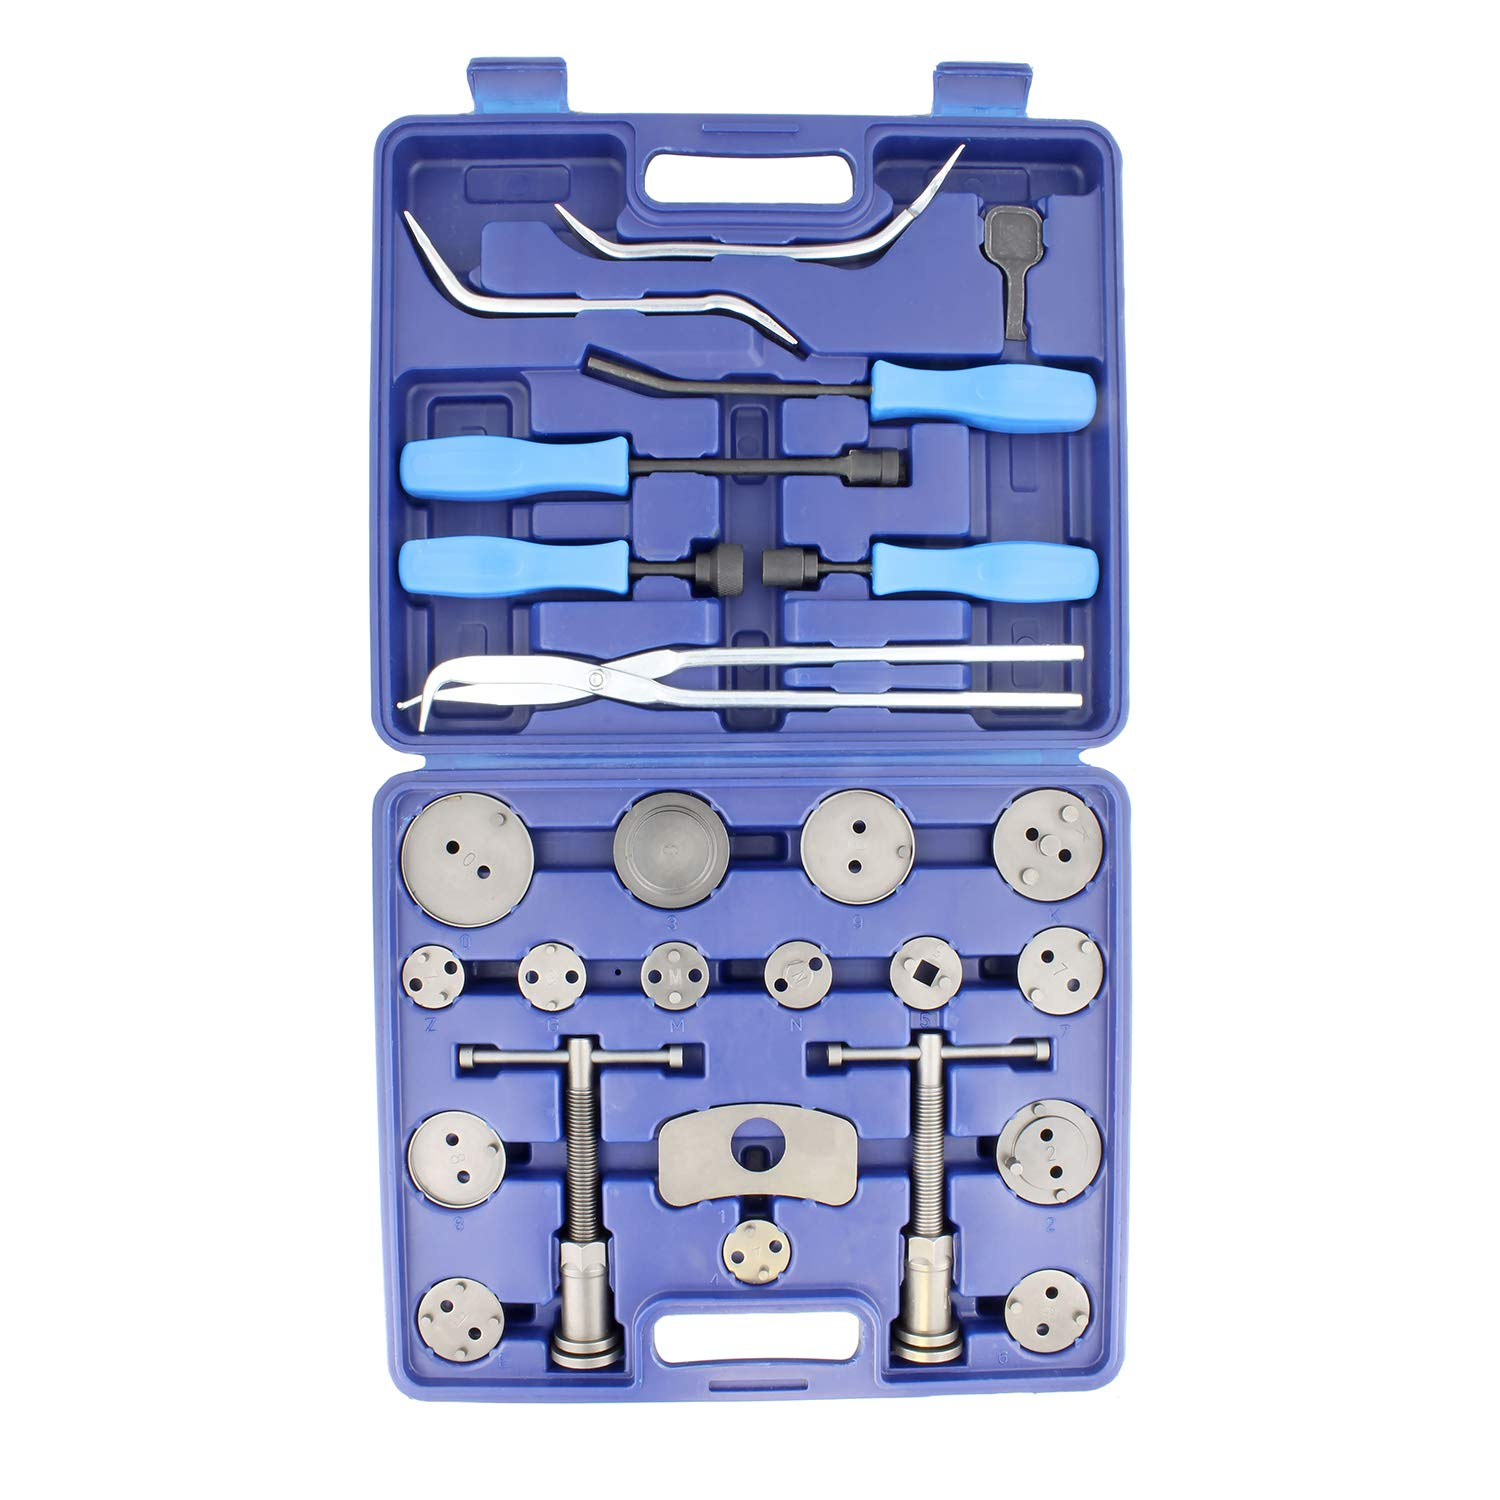 ABN Brake Tool Sets w/ 18 Pc Disc Brake Caliper Tool Kit & 8 Pc Drum Brake Tool Kit – Removal and Installation Tools by ABN (Image #5)